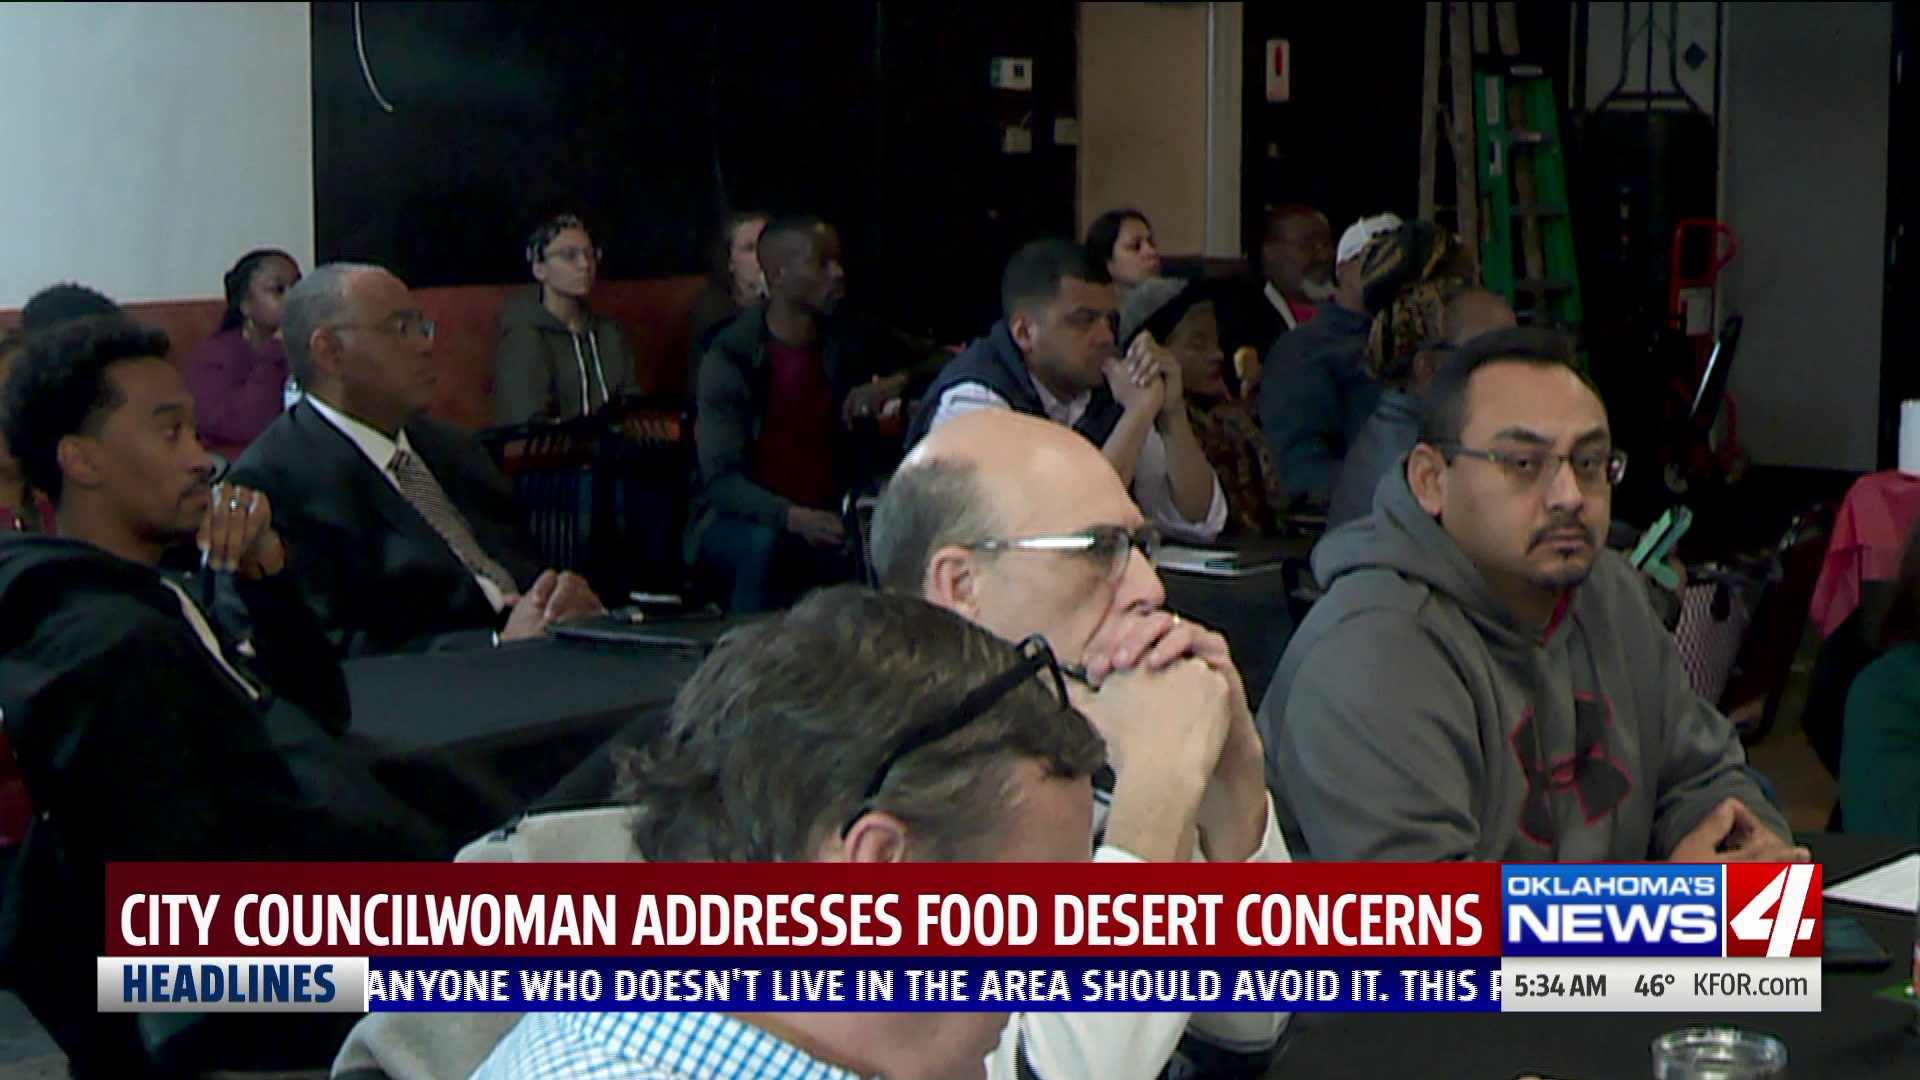 Residents attend meeting about food desert